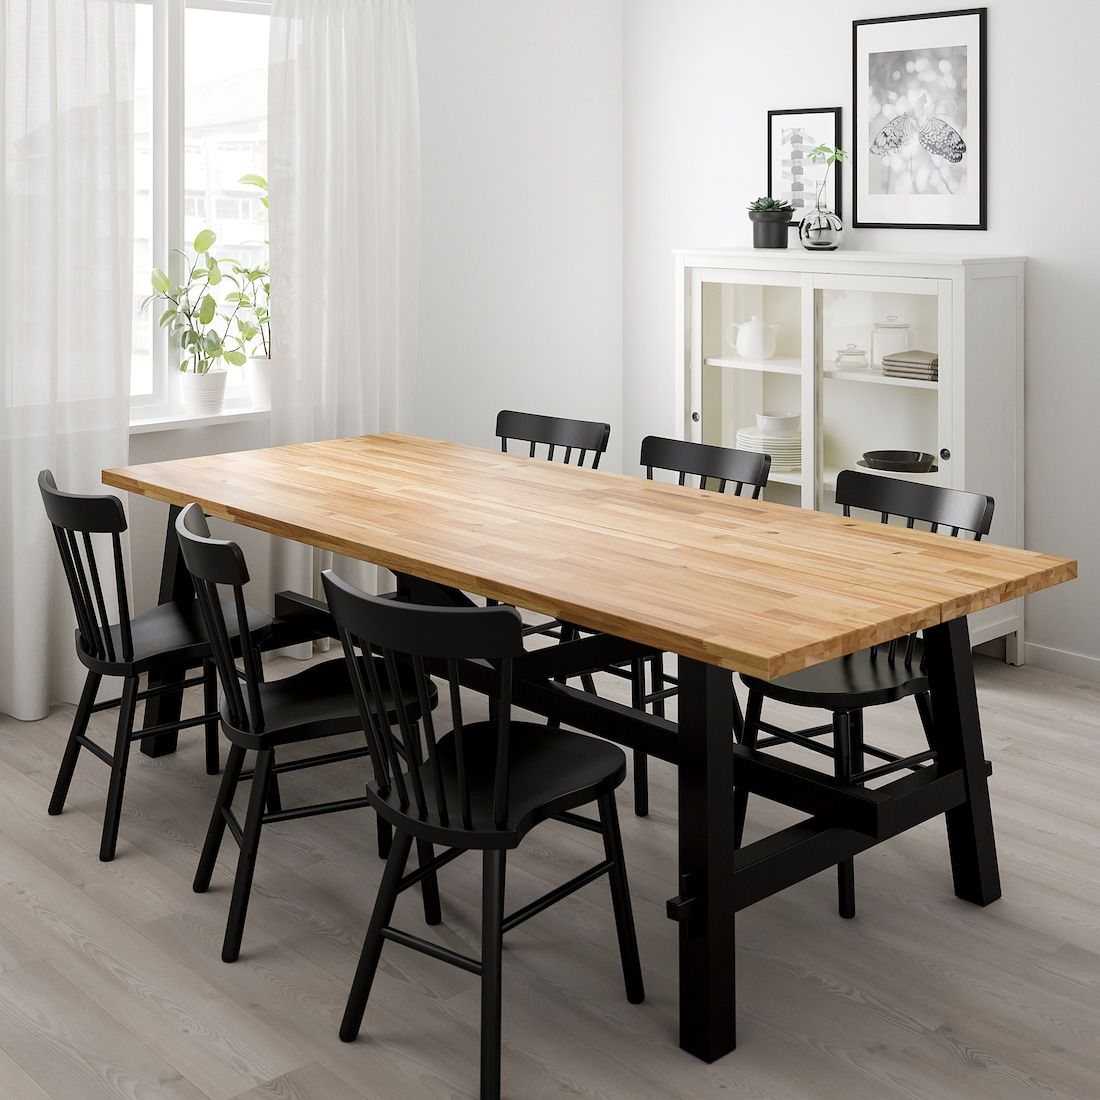 SKOGSTA / NORRARYD Table and 6 chairs, acacia, black ...